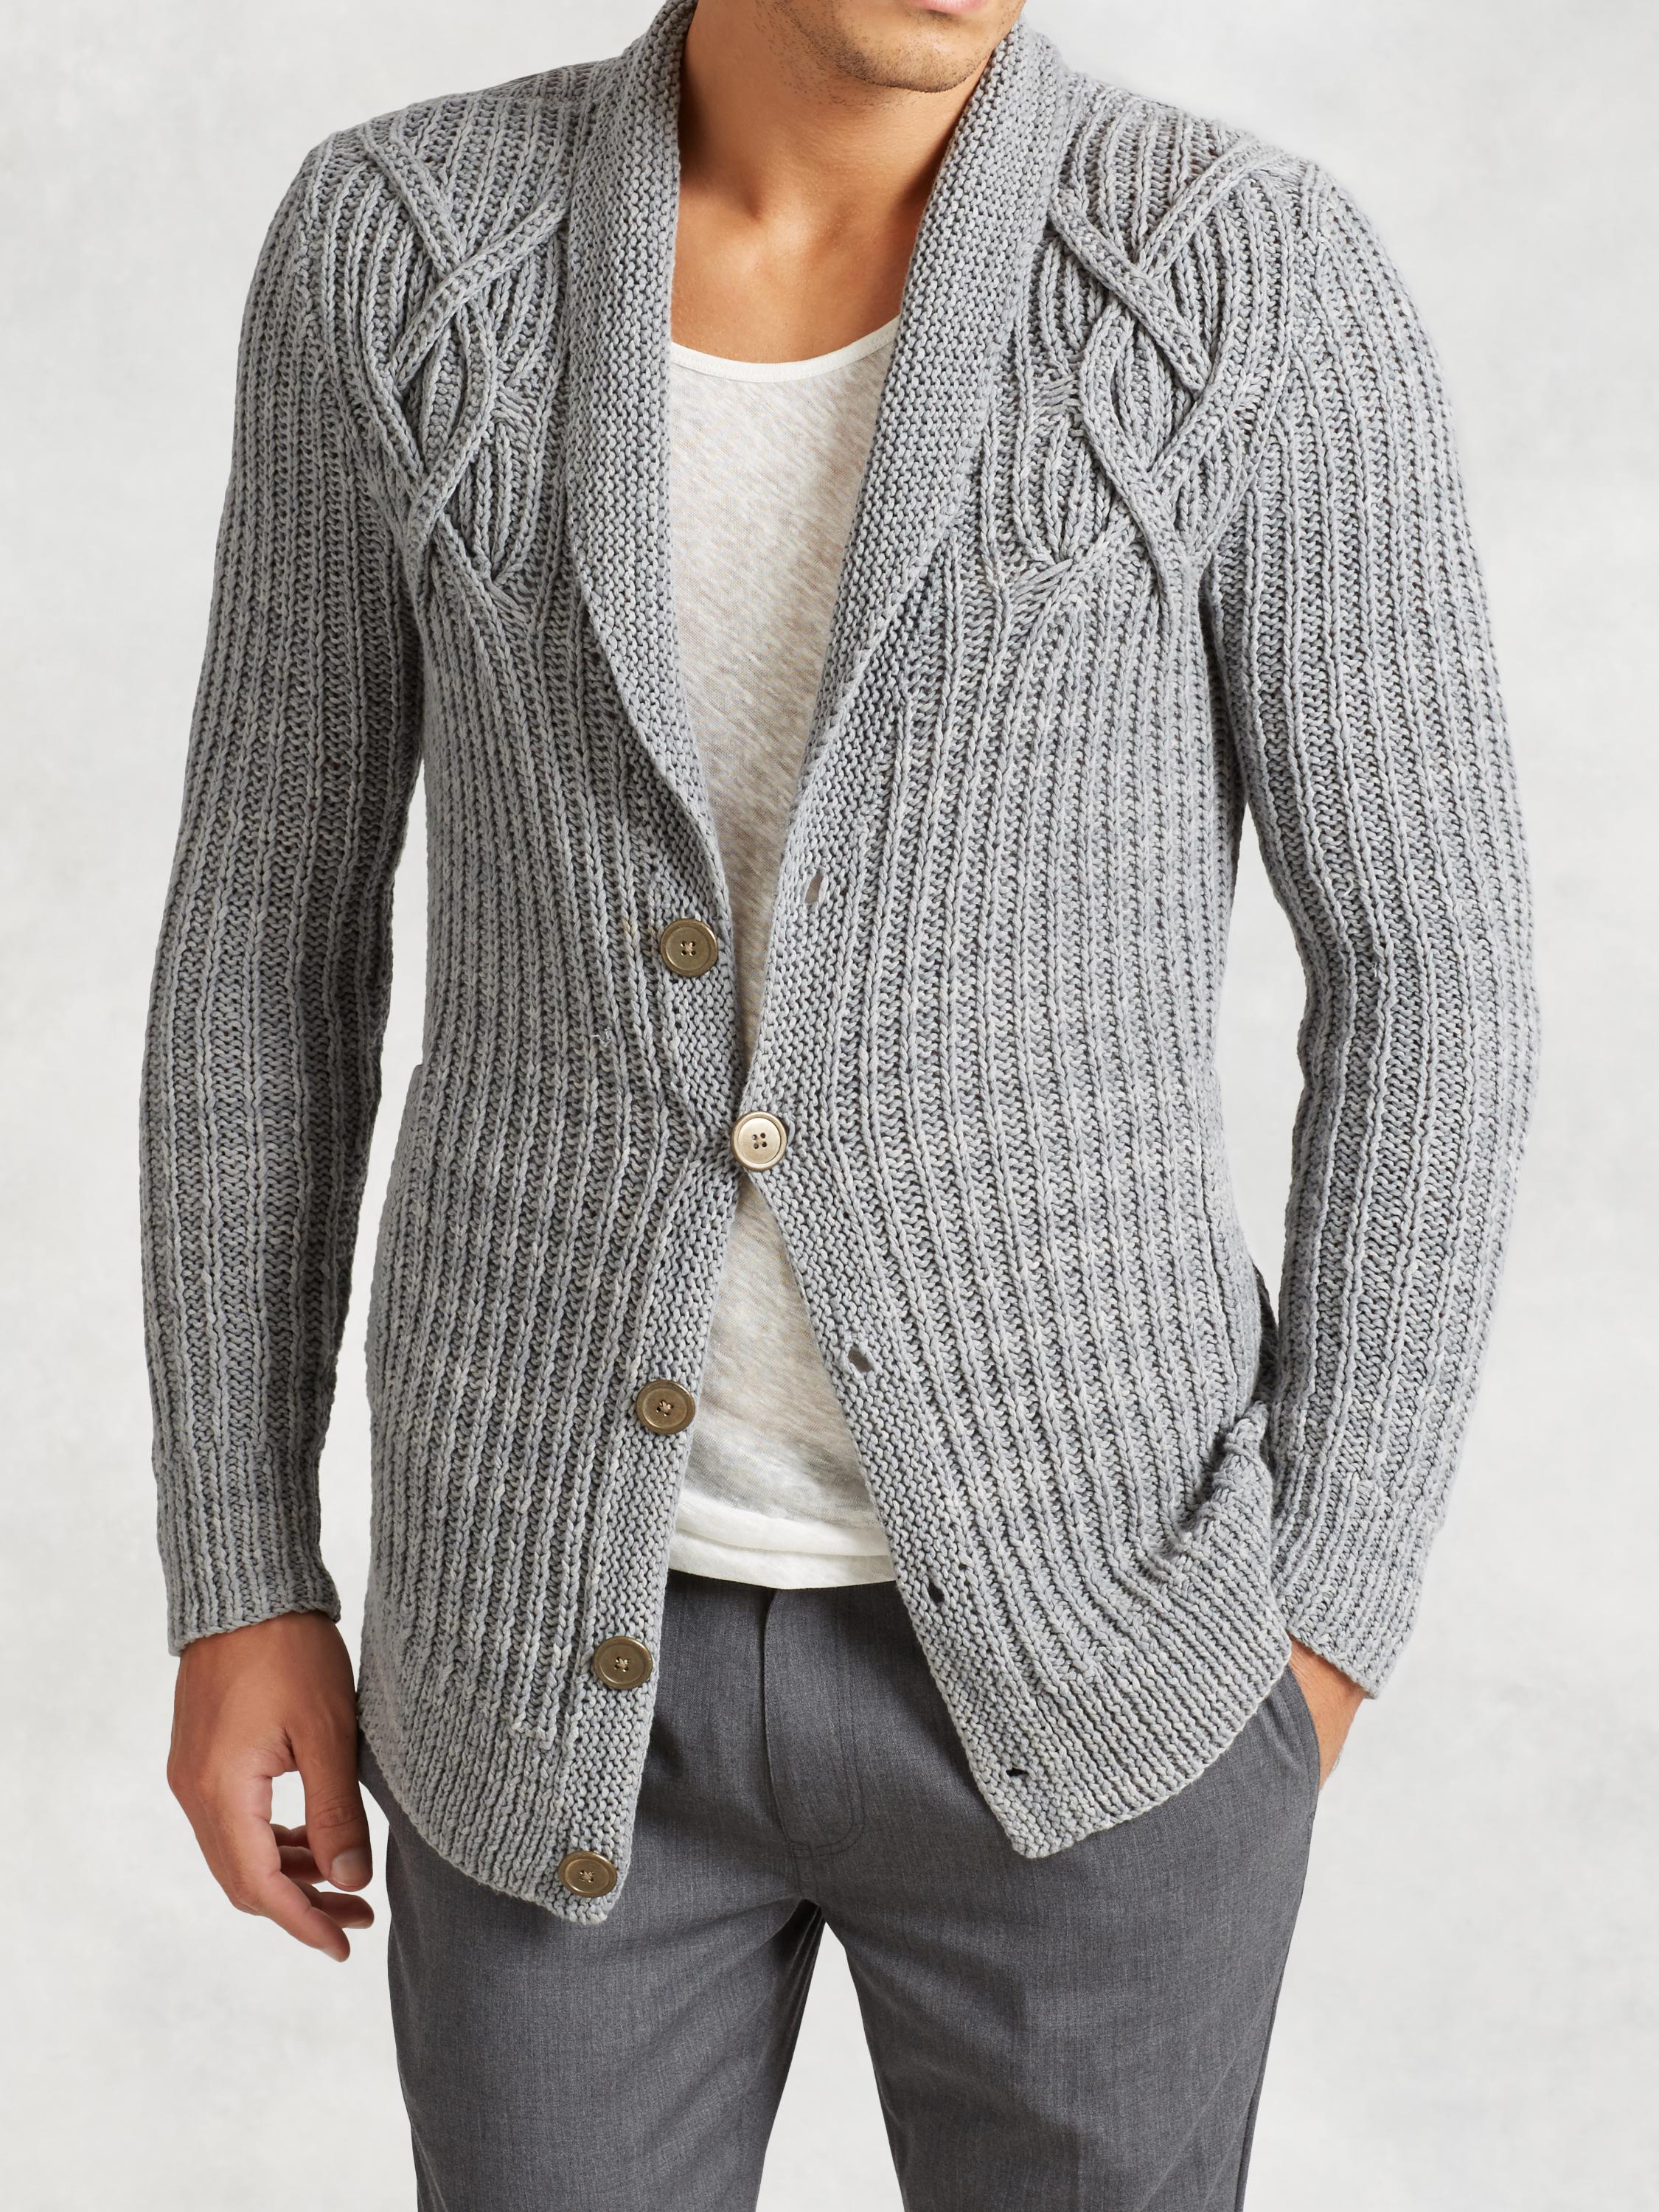 Artisan Cable Knit Cardigan